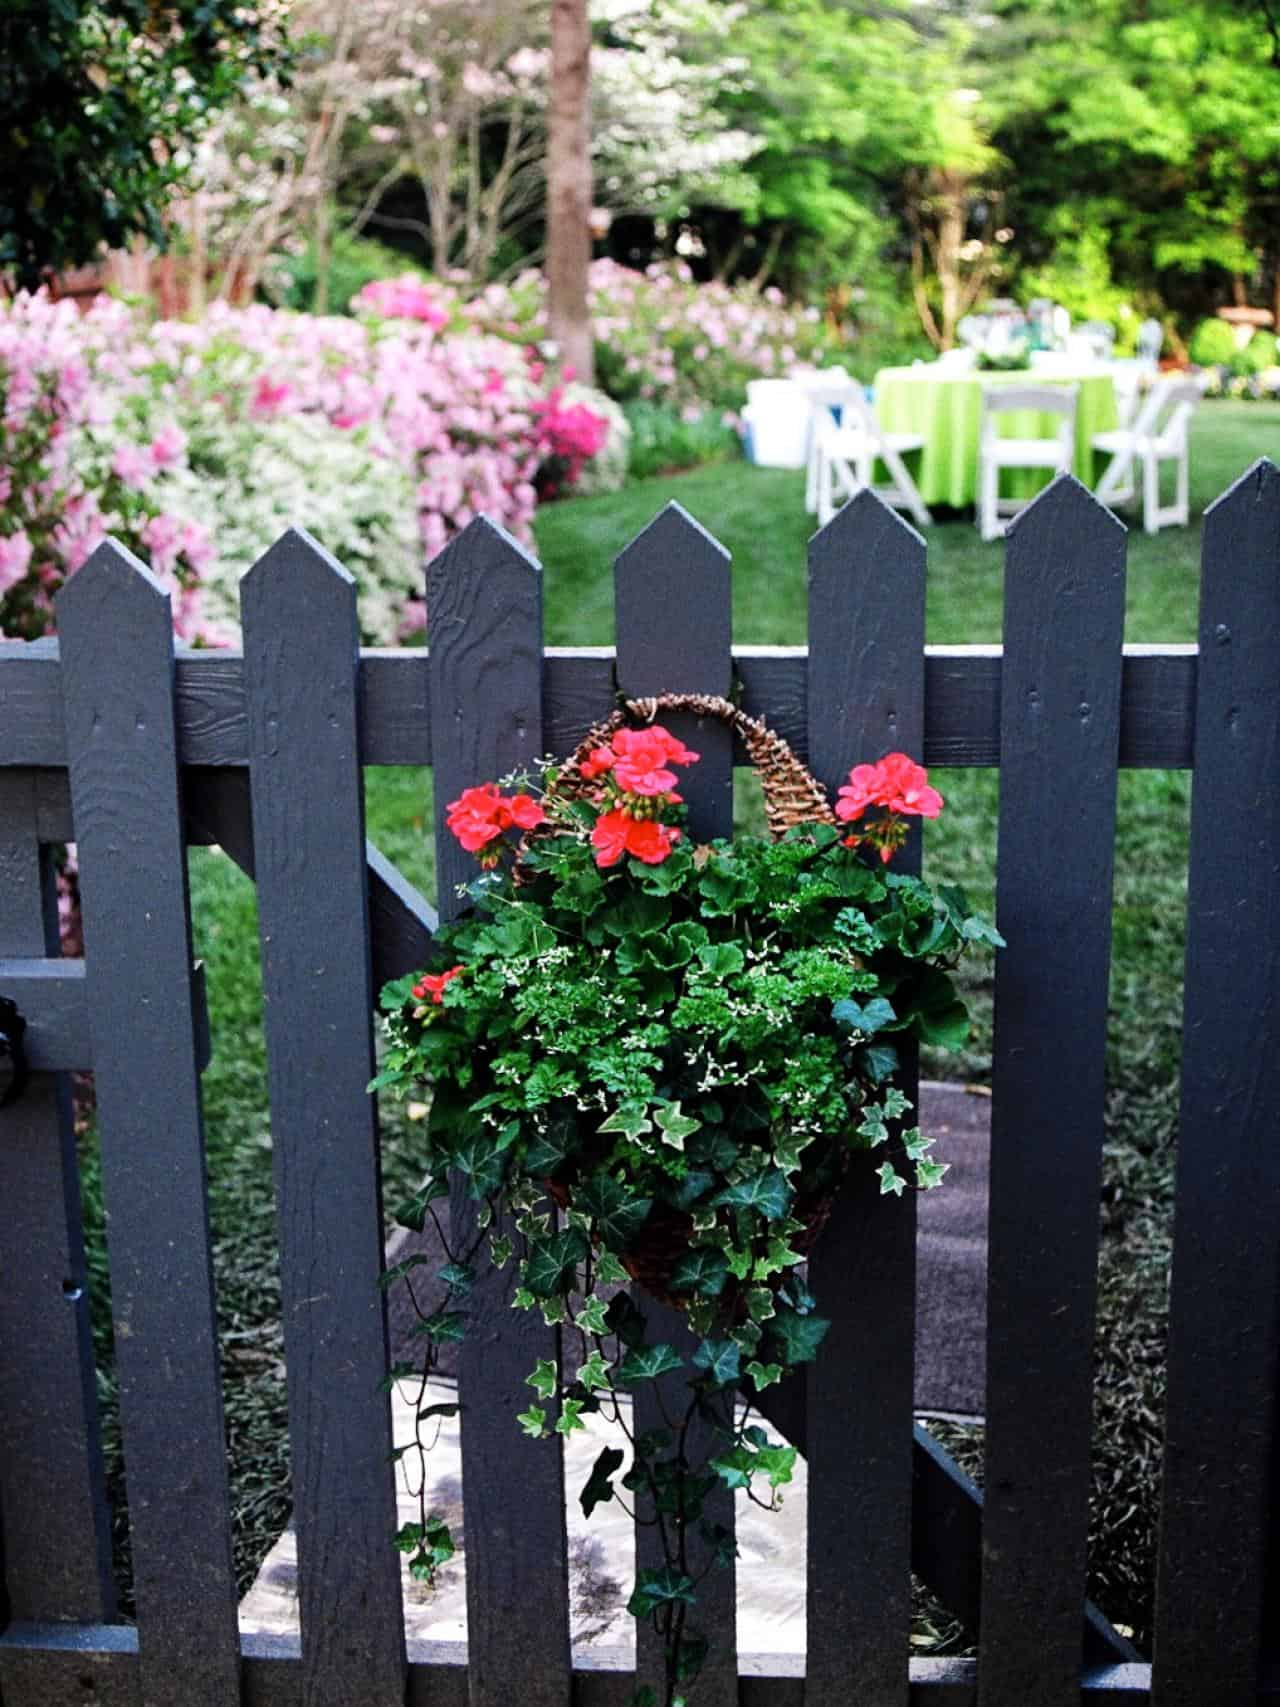 3 Sure You Can Hang Flower Baskets On Your Front Or Back Gate To Liven It Up